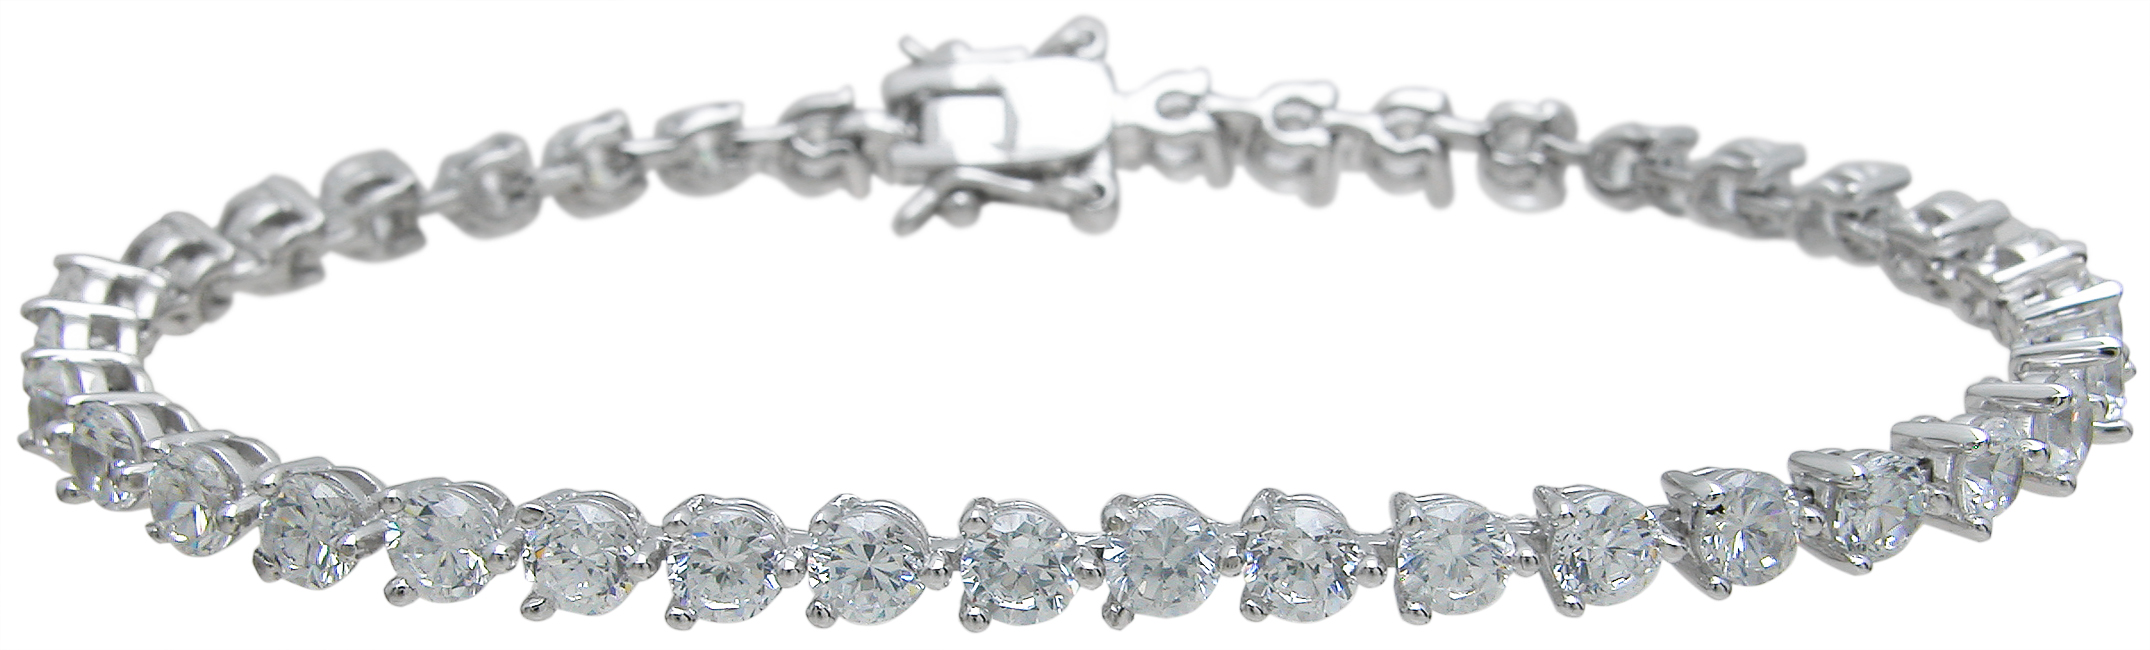 aa1f53987 Wholesale 925 Sterling Silver Tiffany Style Bracelet